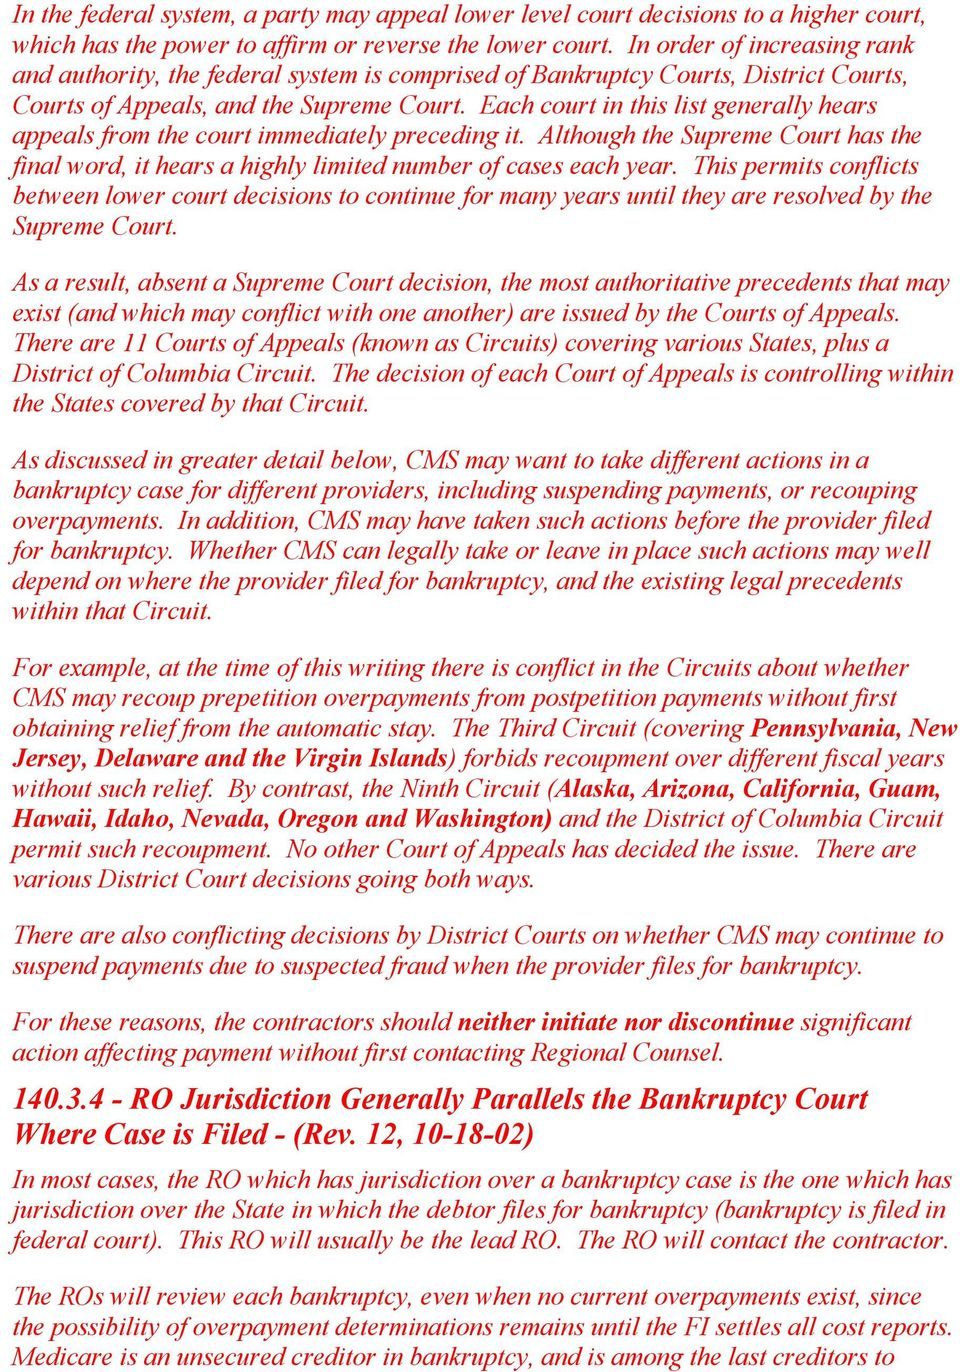 Each court in this list generally hears appeals from the court immediately preceding it. Although the Supreme Court has the final word, it hears a highly limited number of cases each year.